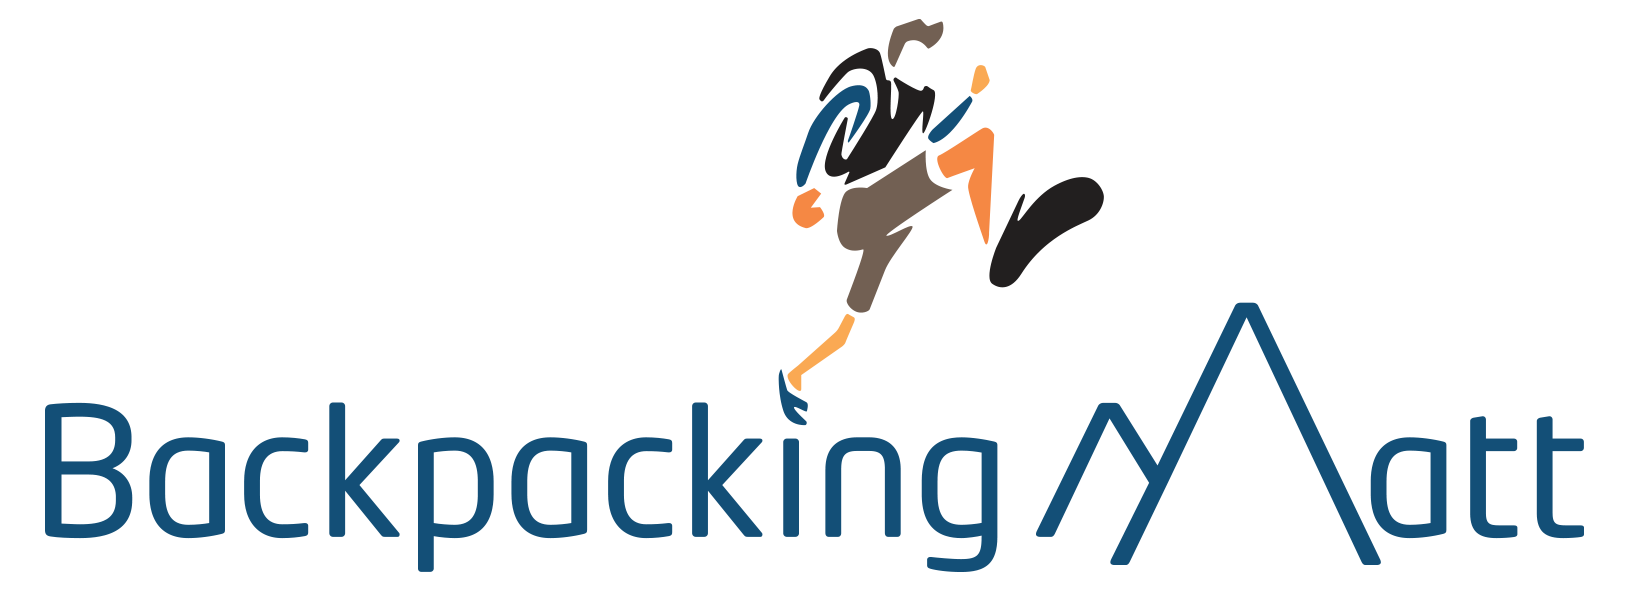 Backpackingmatt Logo